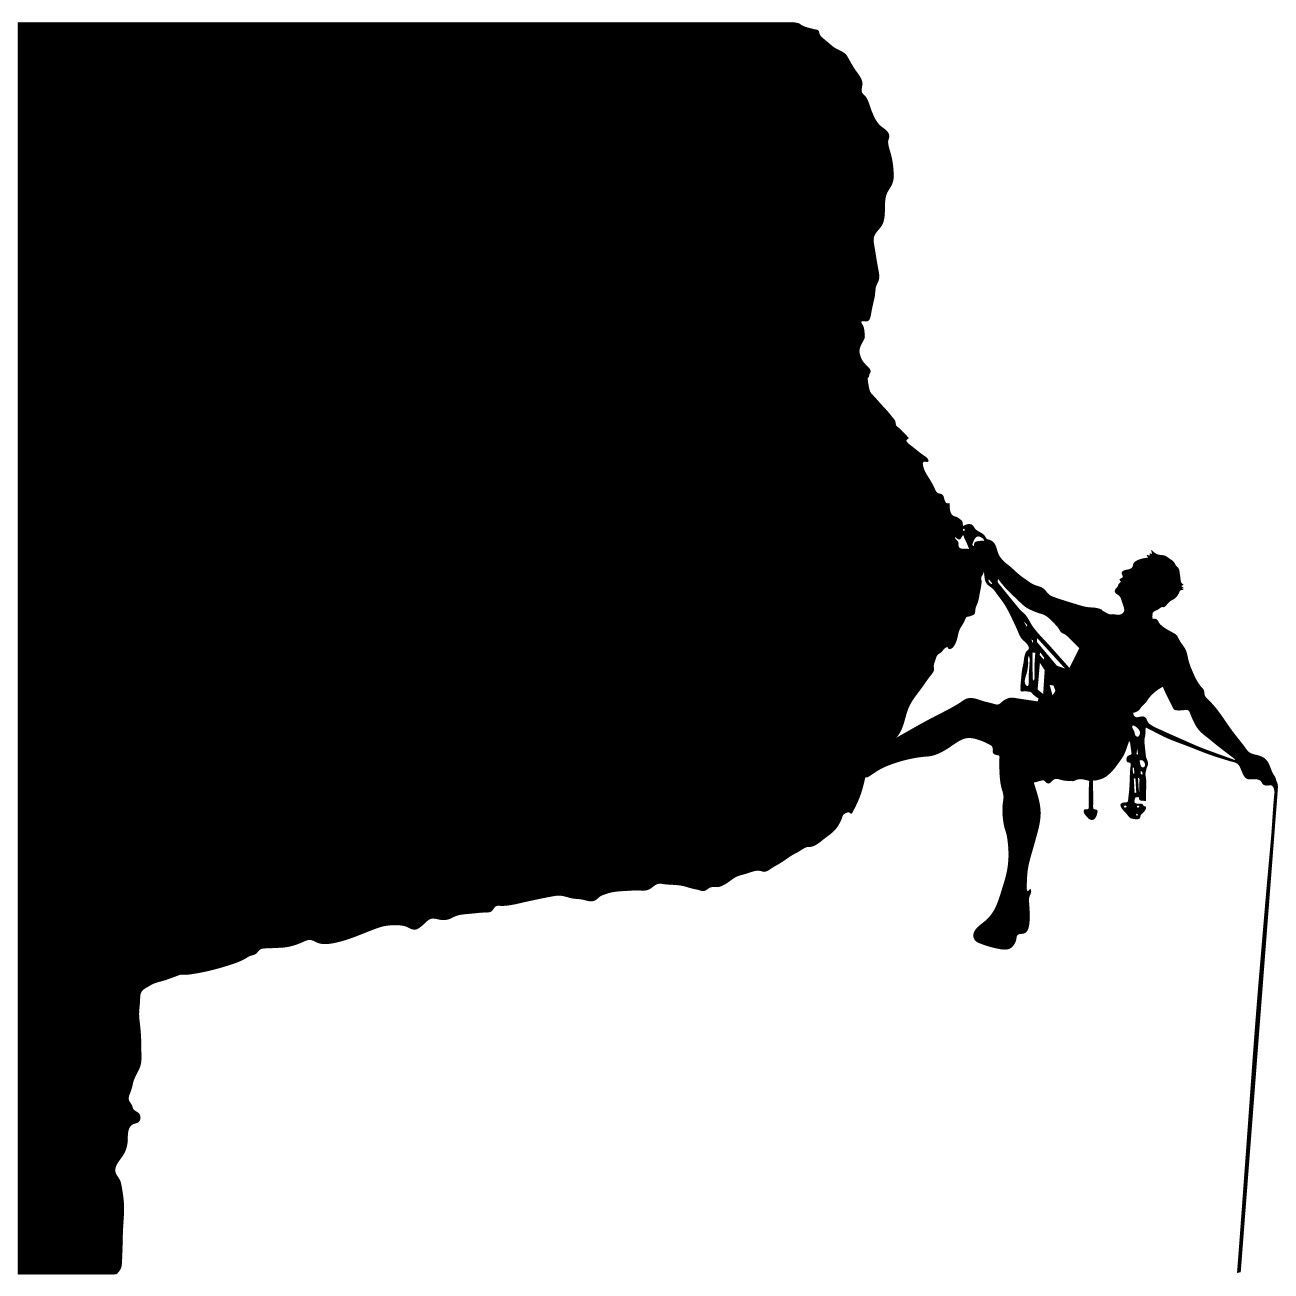 1296x1296 Rock Climbing Wall Decal Sticker 21 Rock Climbing, Wall Decal